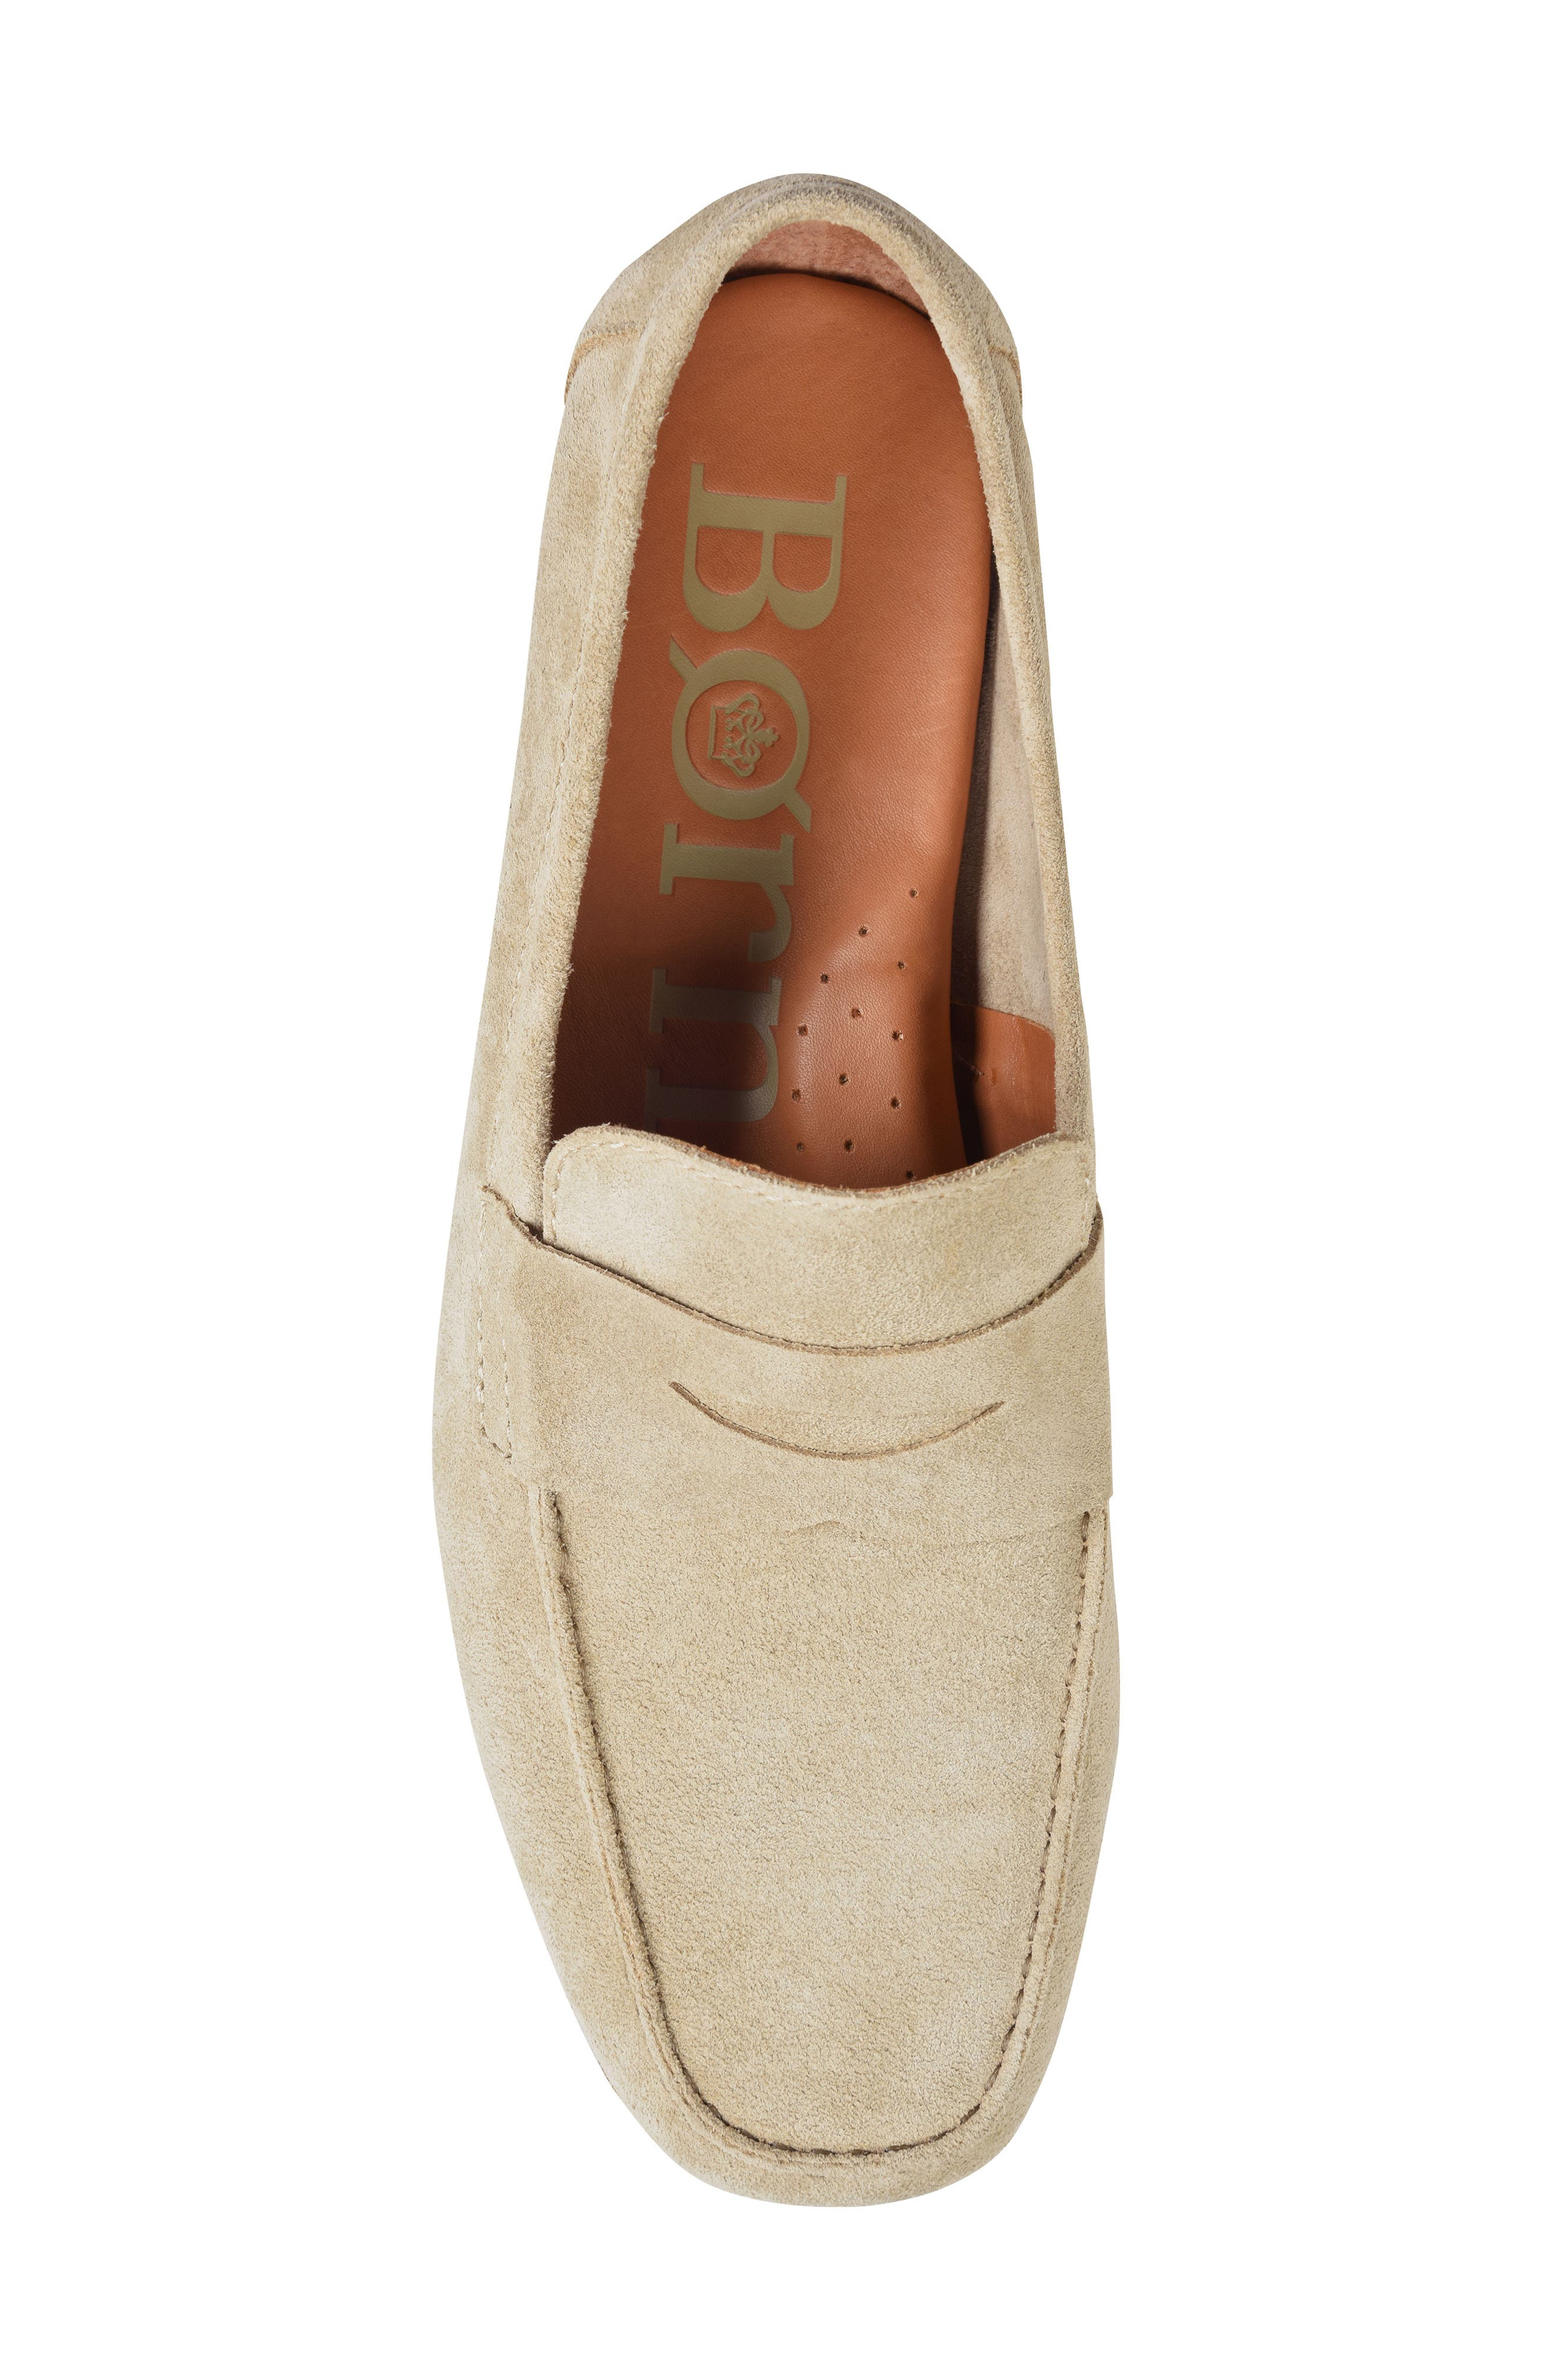 'Dave' Penny Loafer,                             Alternate thumbnail 5, color,                             Natural Suede